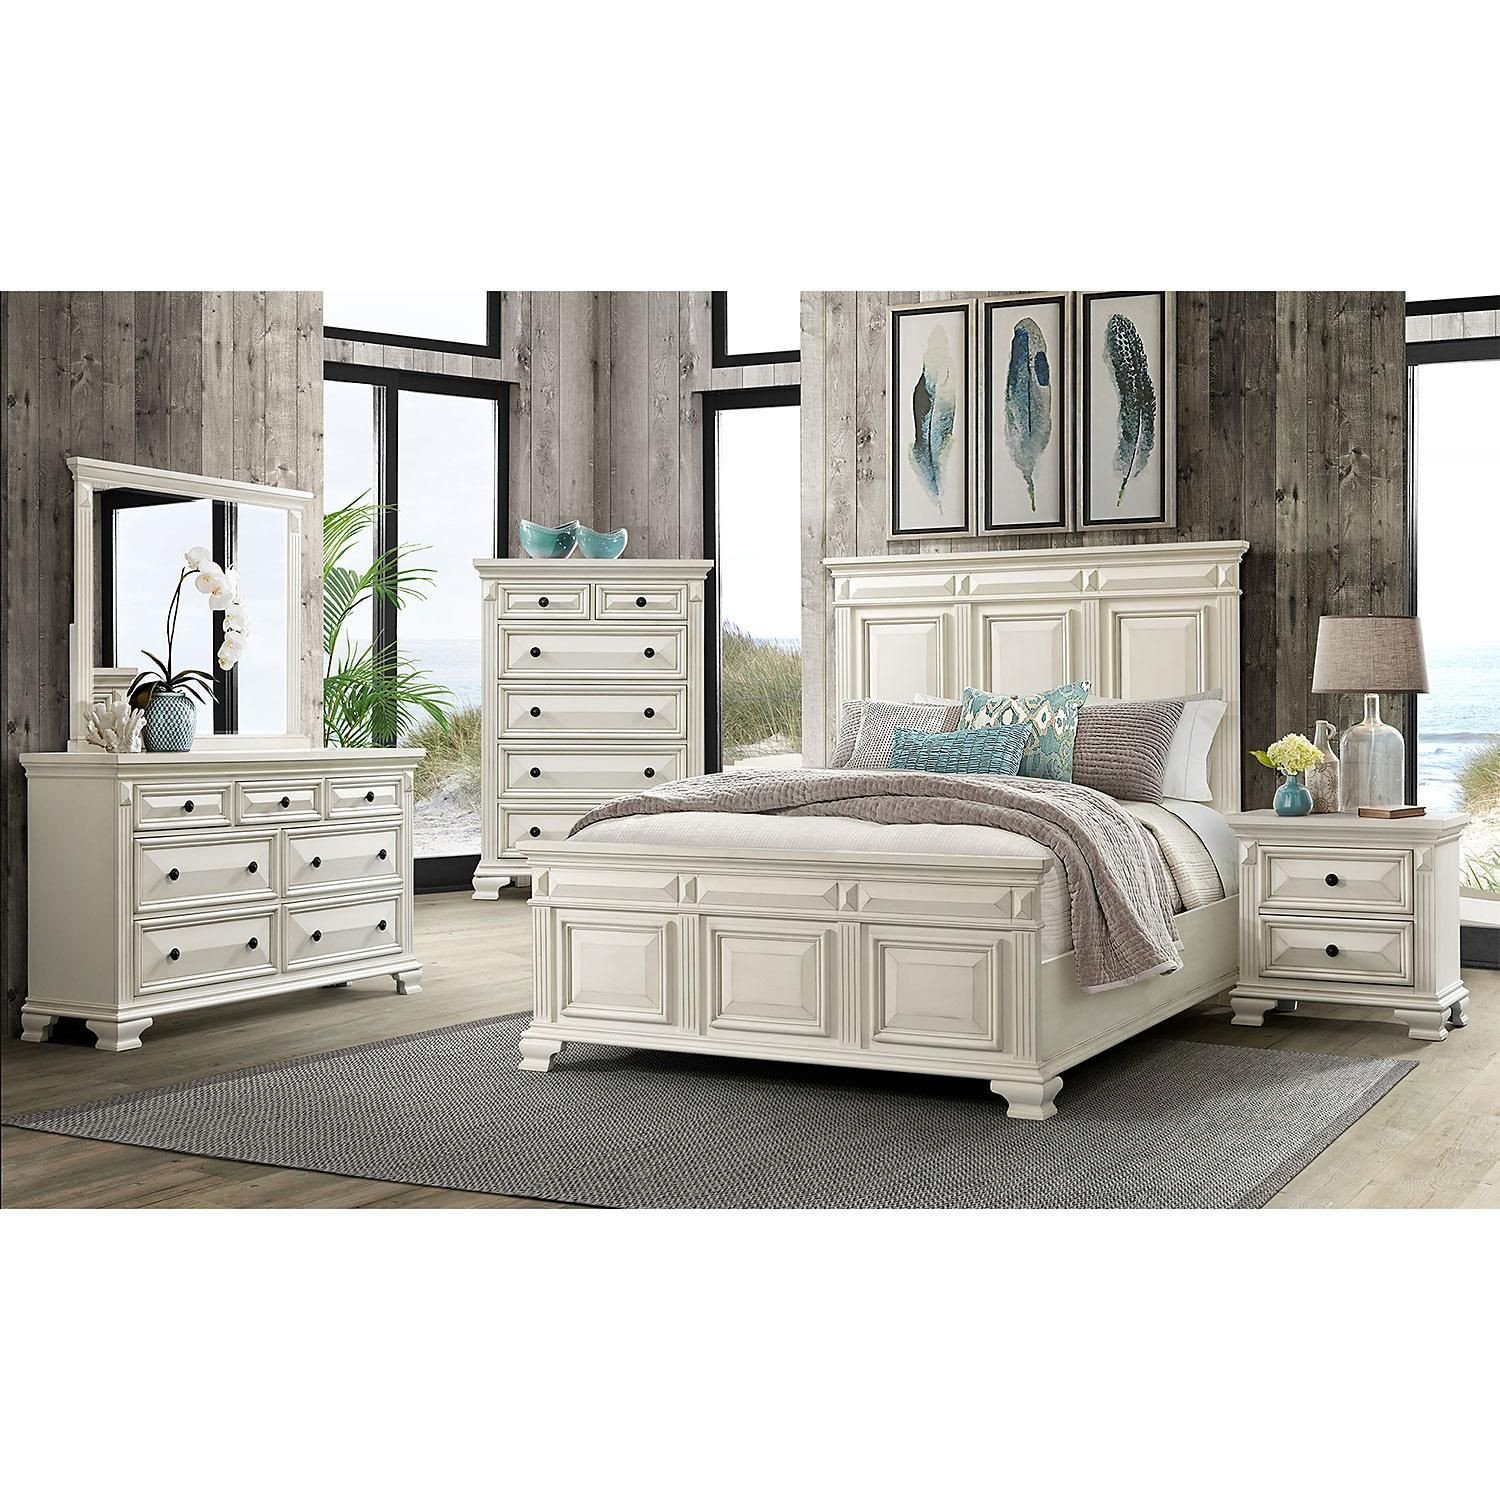 White Full Size Bedroom Set Unique $1599 00 society Den Trent Panel 6 Piece King Bedroom Set